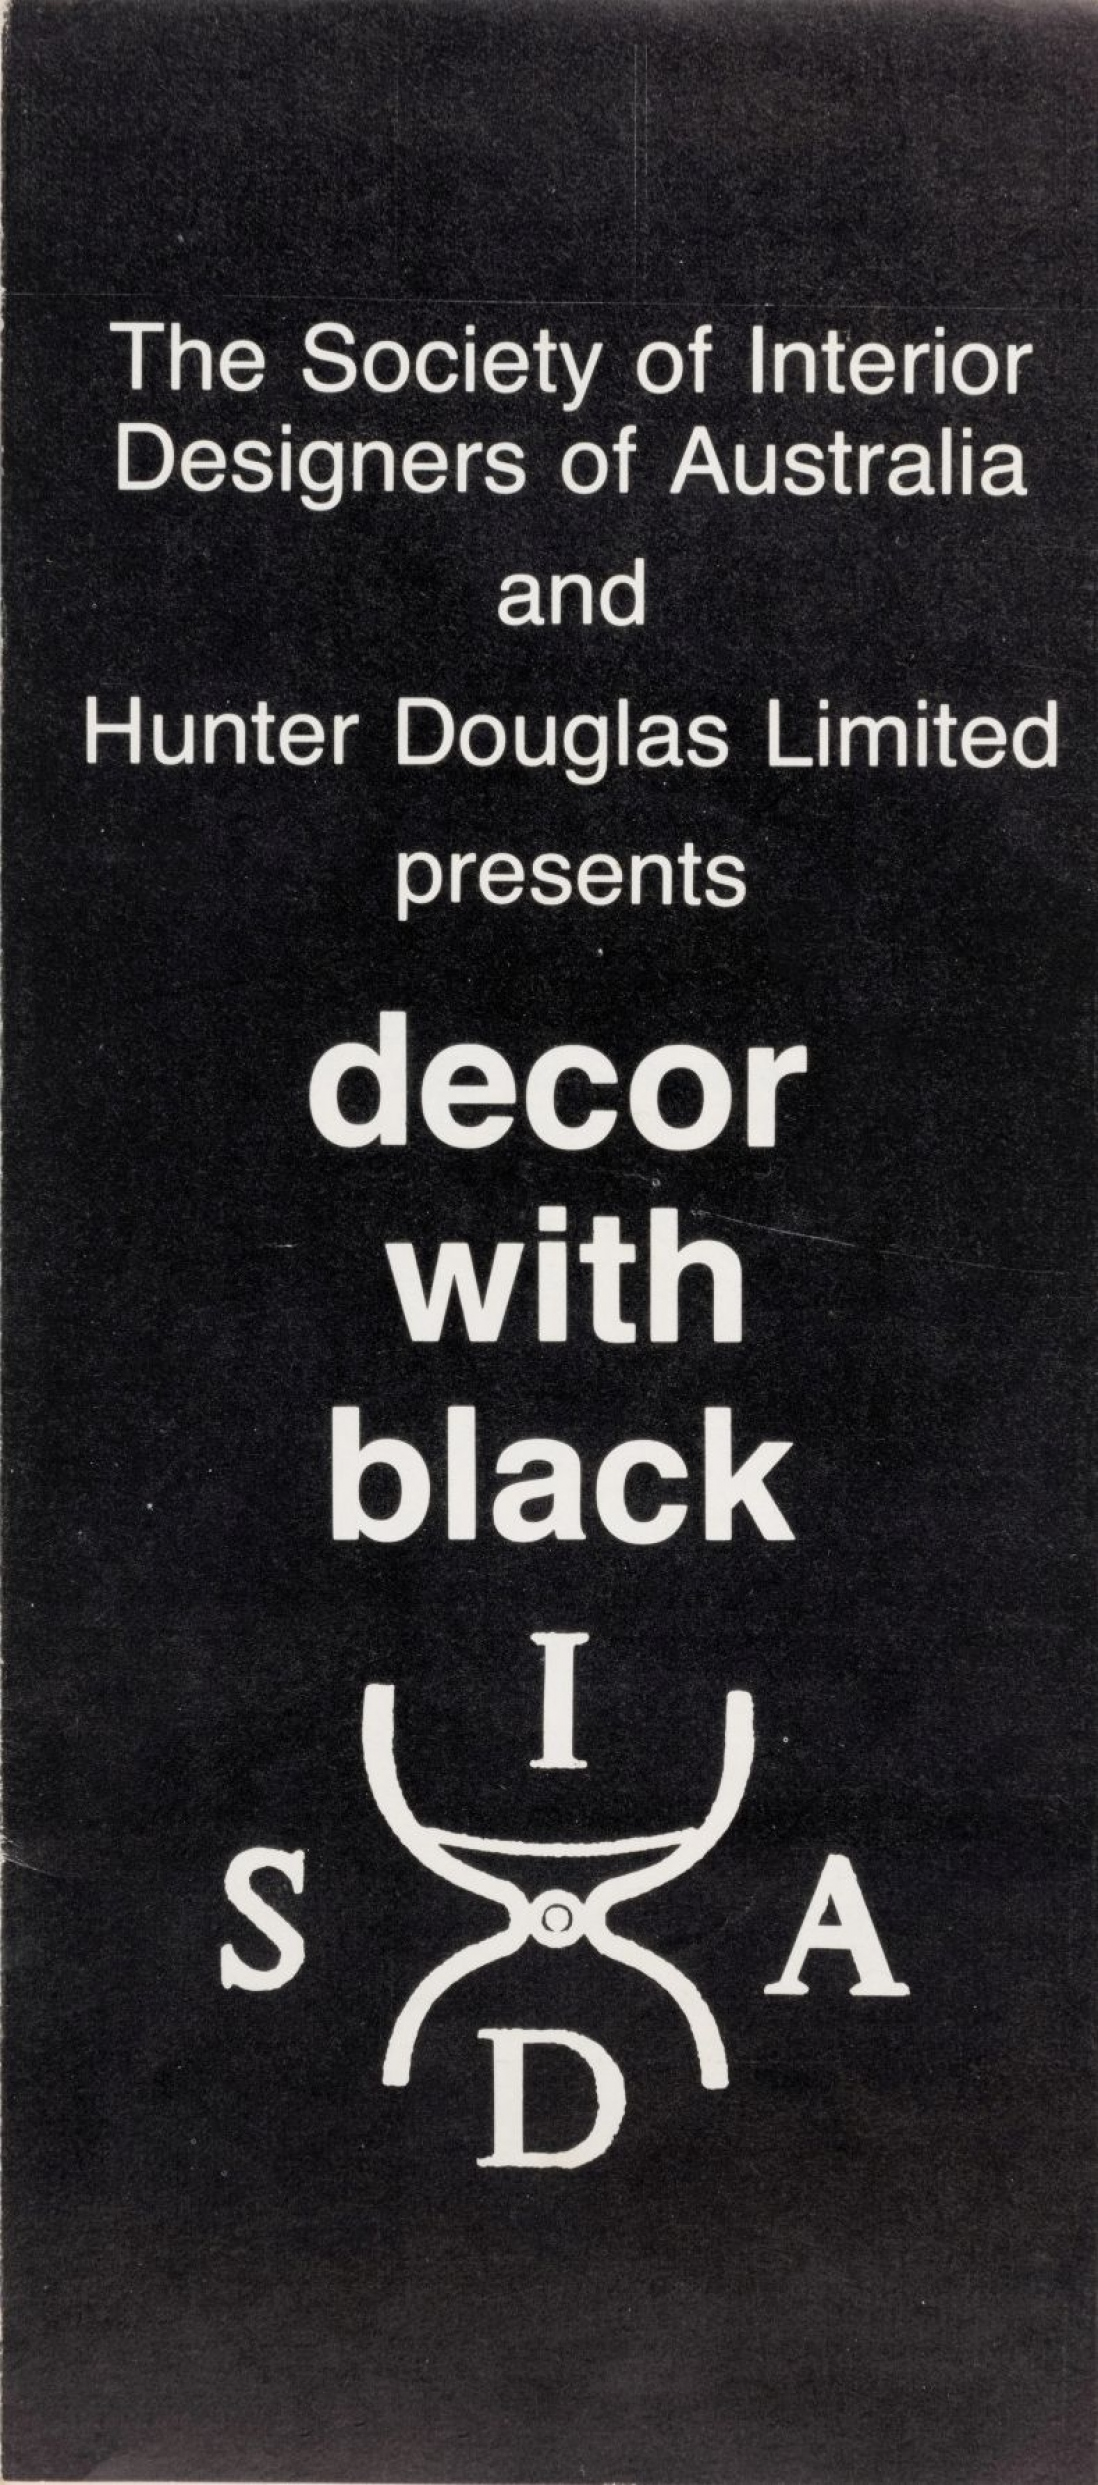 SIDA brochure - display rooms 1980 'Decor with black'